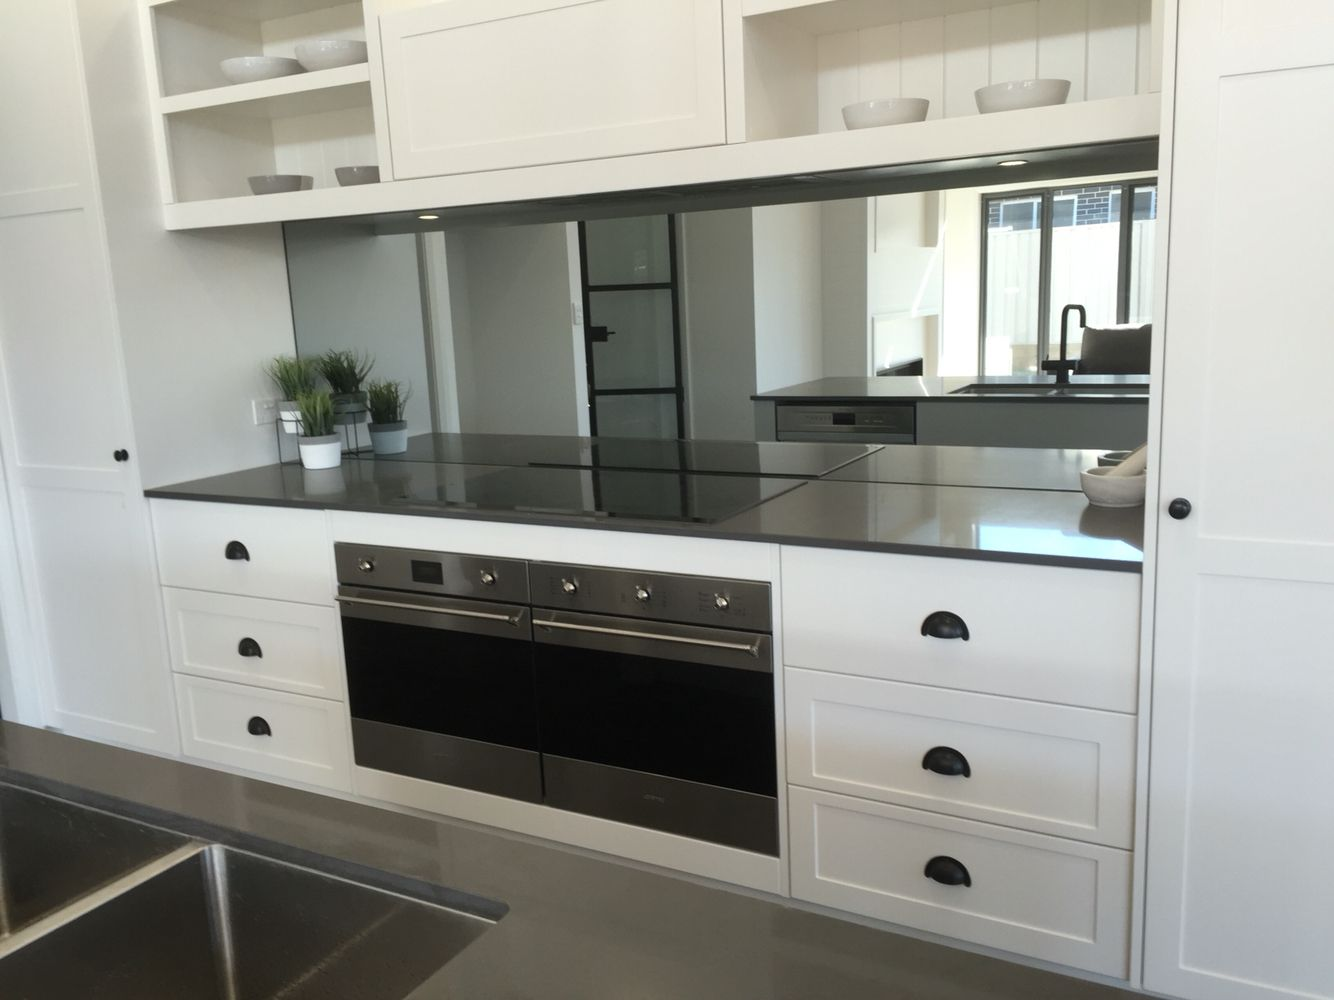 White Kitchen Splashback Ideas white kitchen, smoke grey mirror splashbackverity rhodes